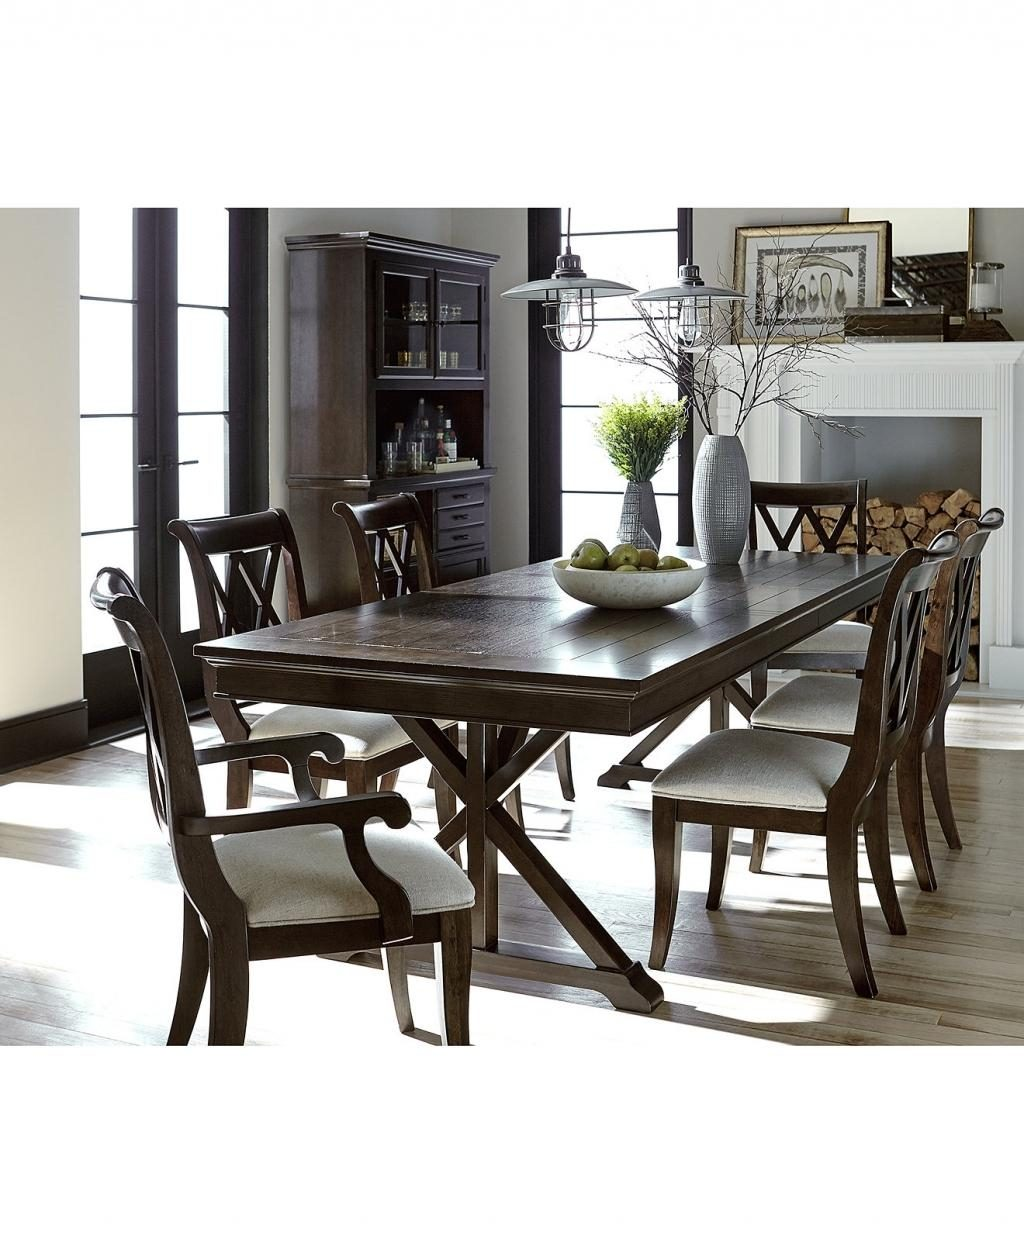 Triangle Dining Table Set Inspirational Macys Dining Room Sets